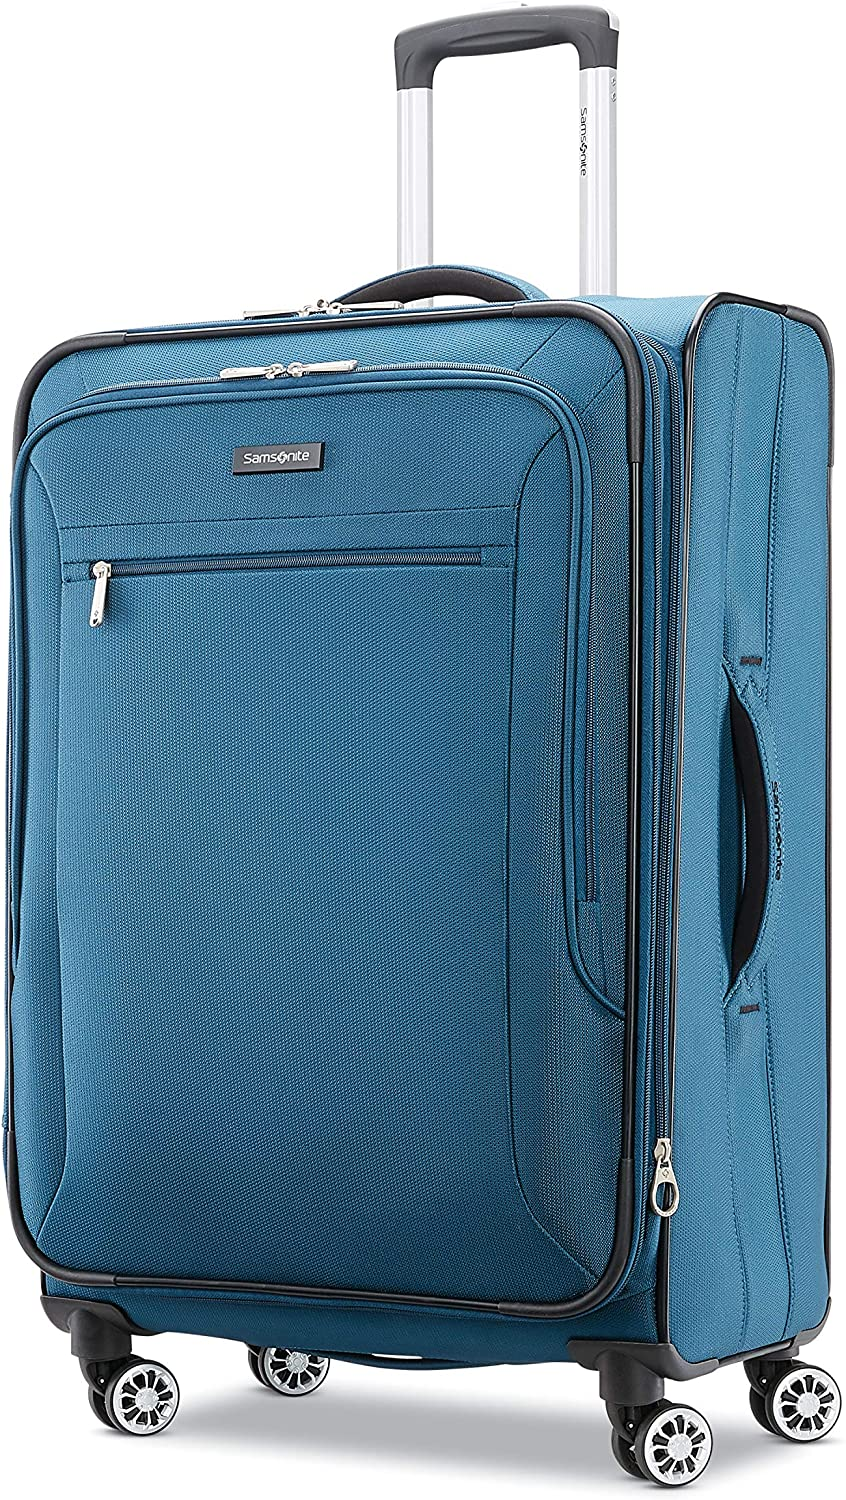 Samsonite Ascella X Softside Expandable Luggage with Spinner Wheels, Teal, Checked-Medium 25-Inch